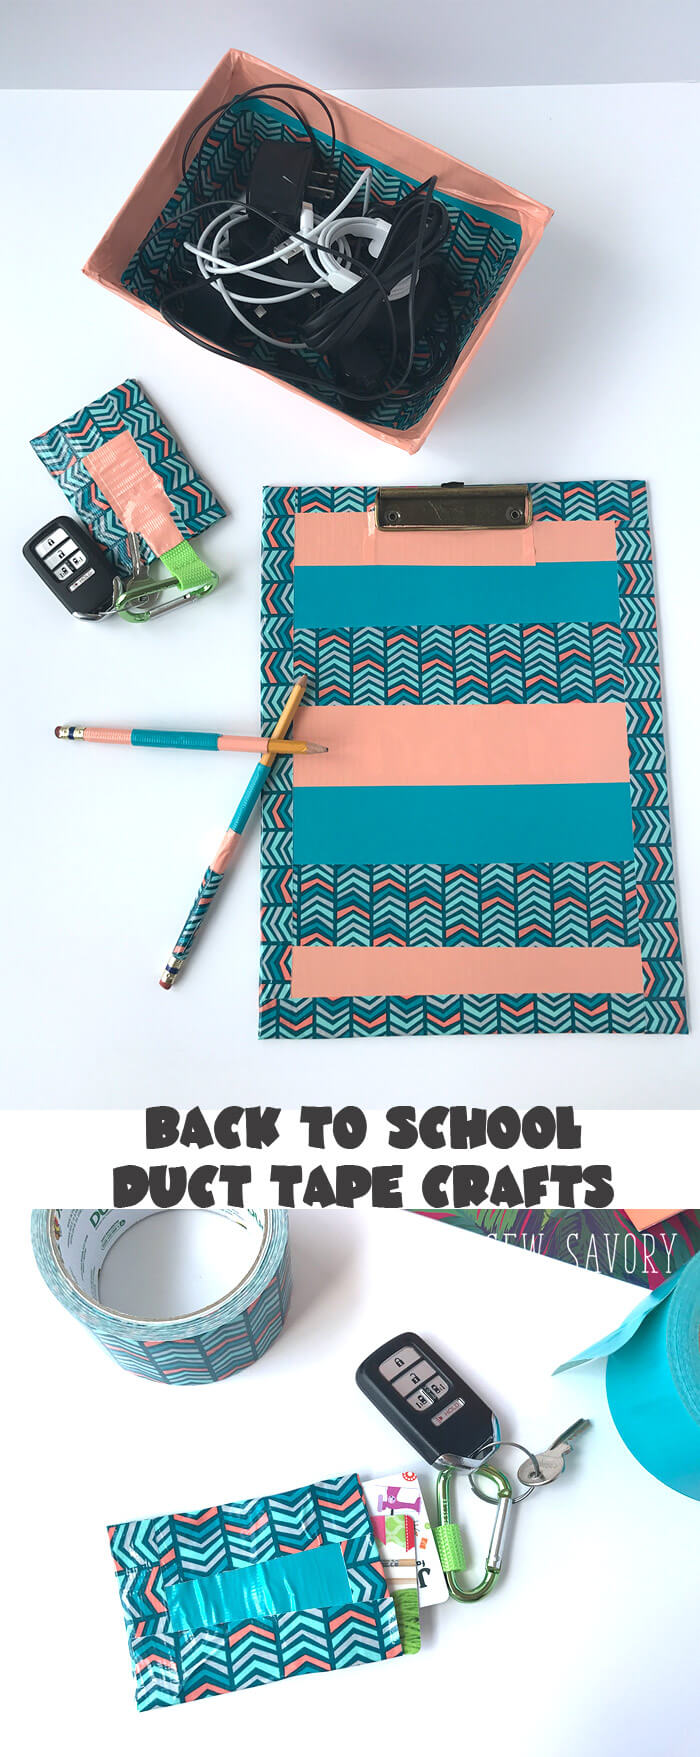 Duct Tape Crafts for back to school - cover all the things from Life Sew Savory